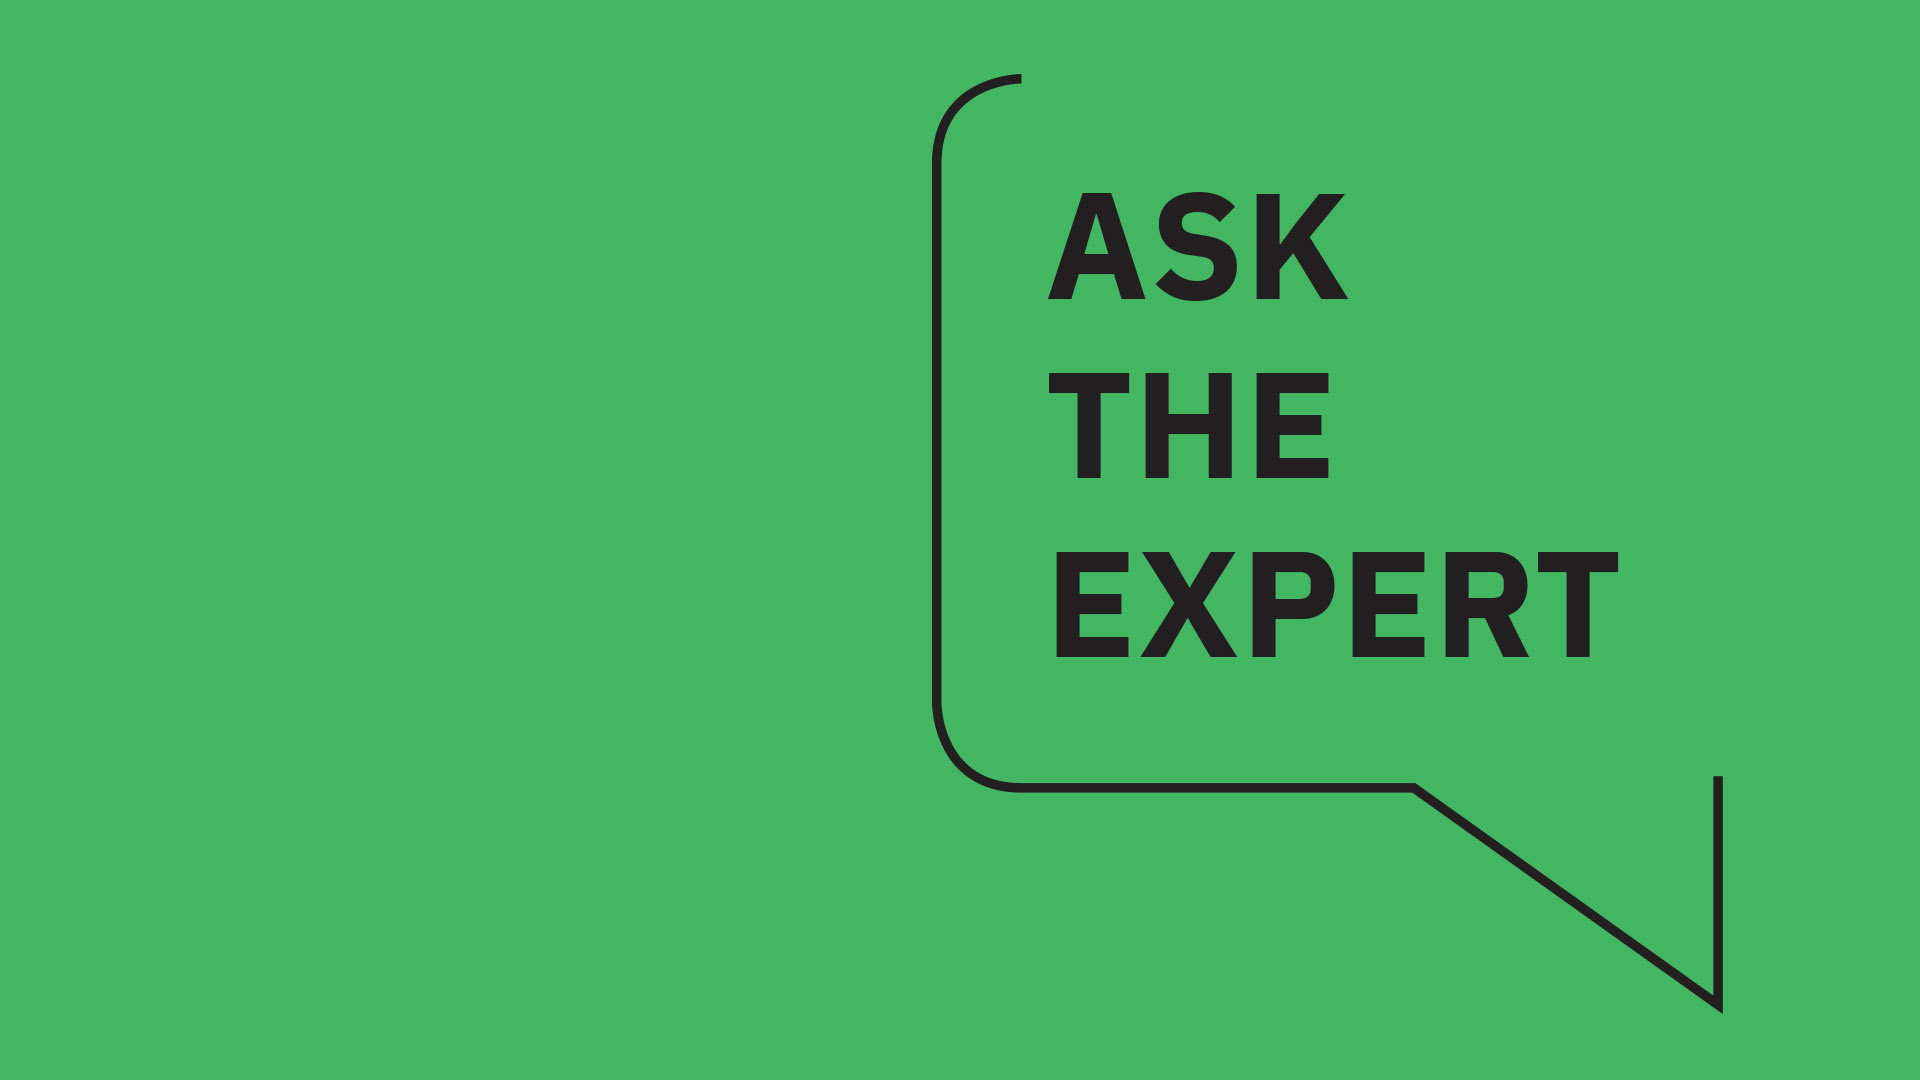 Ask the Expert text on green background.